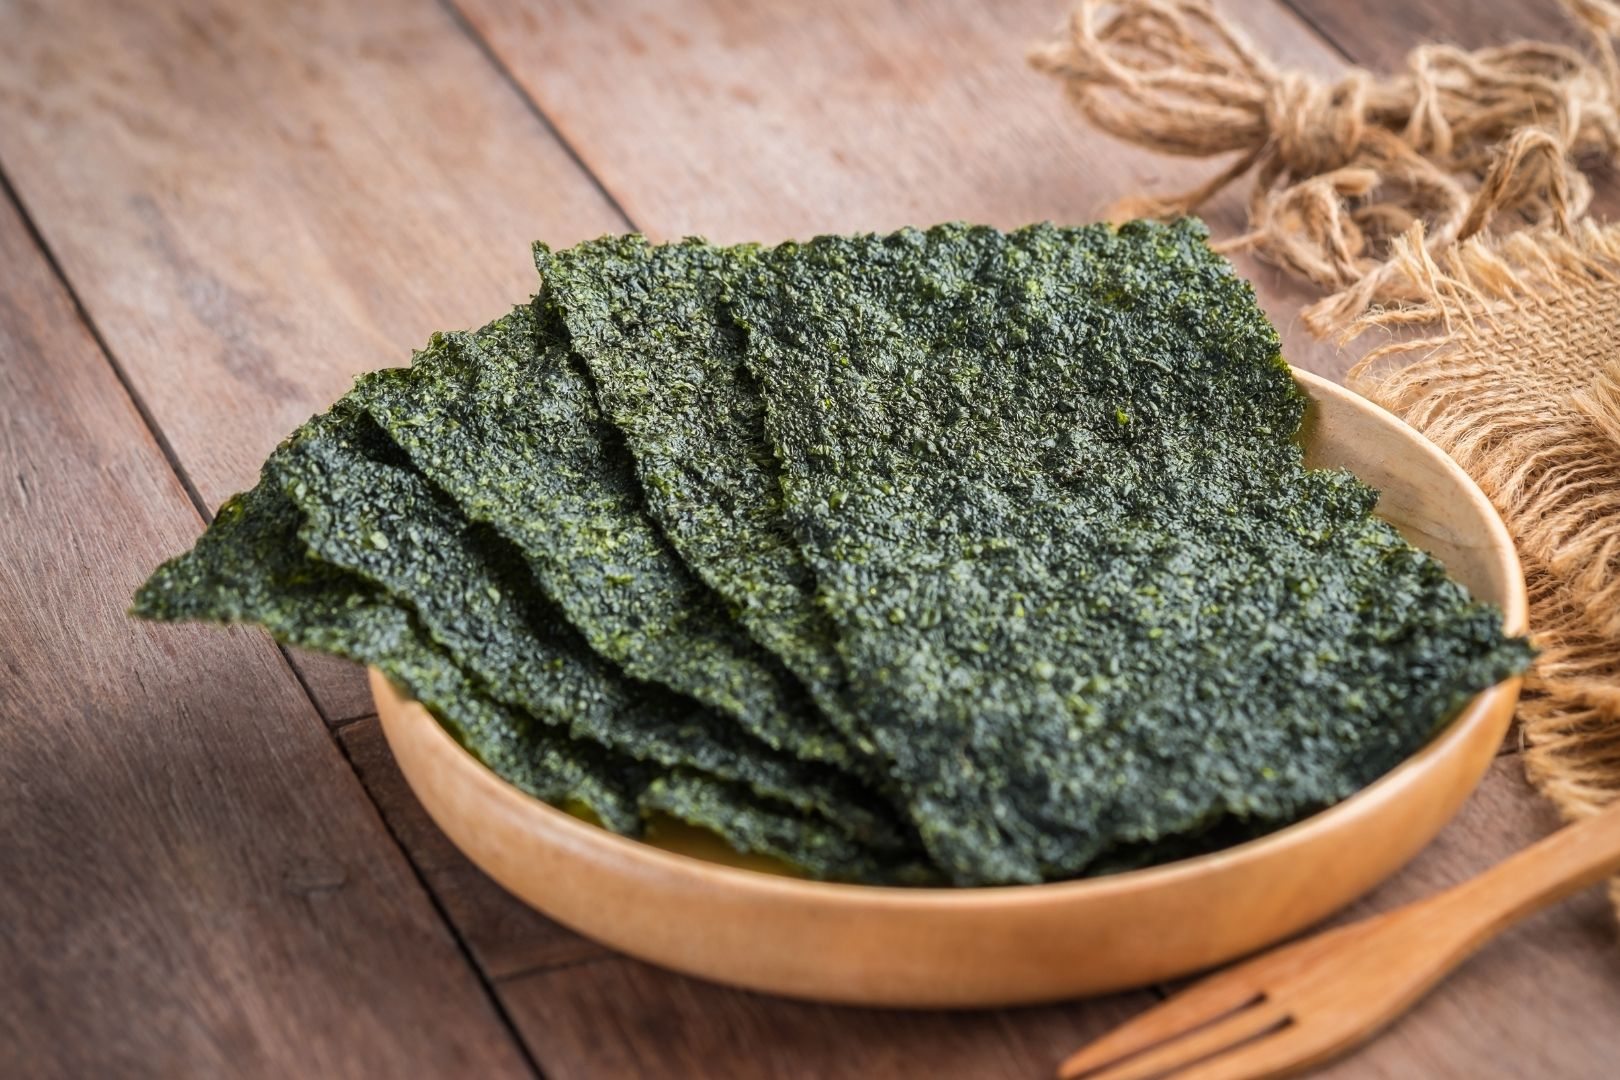 Edible Seaweed: Five sheets of nori seaweed fanned out in a wooden bowl on a wooden table. In front is a wooden fork and to the right is a natural-fiber placemat.